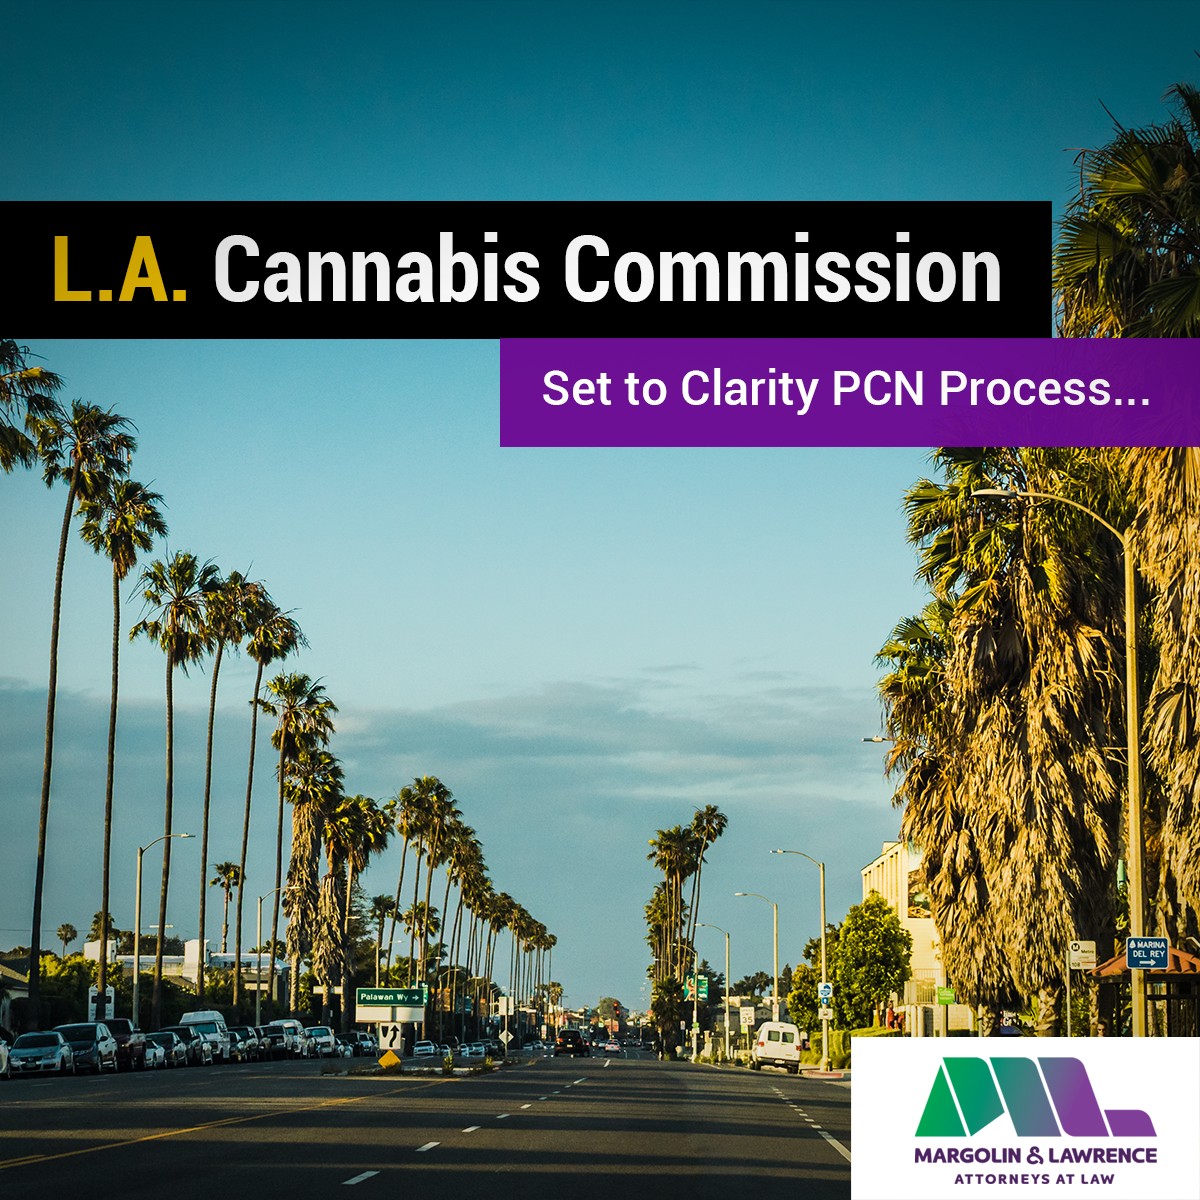 L.A. Cannabis Commission Set To Clarify PCN Process